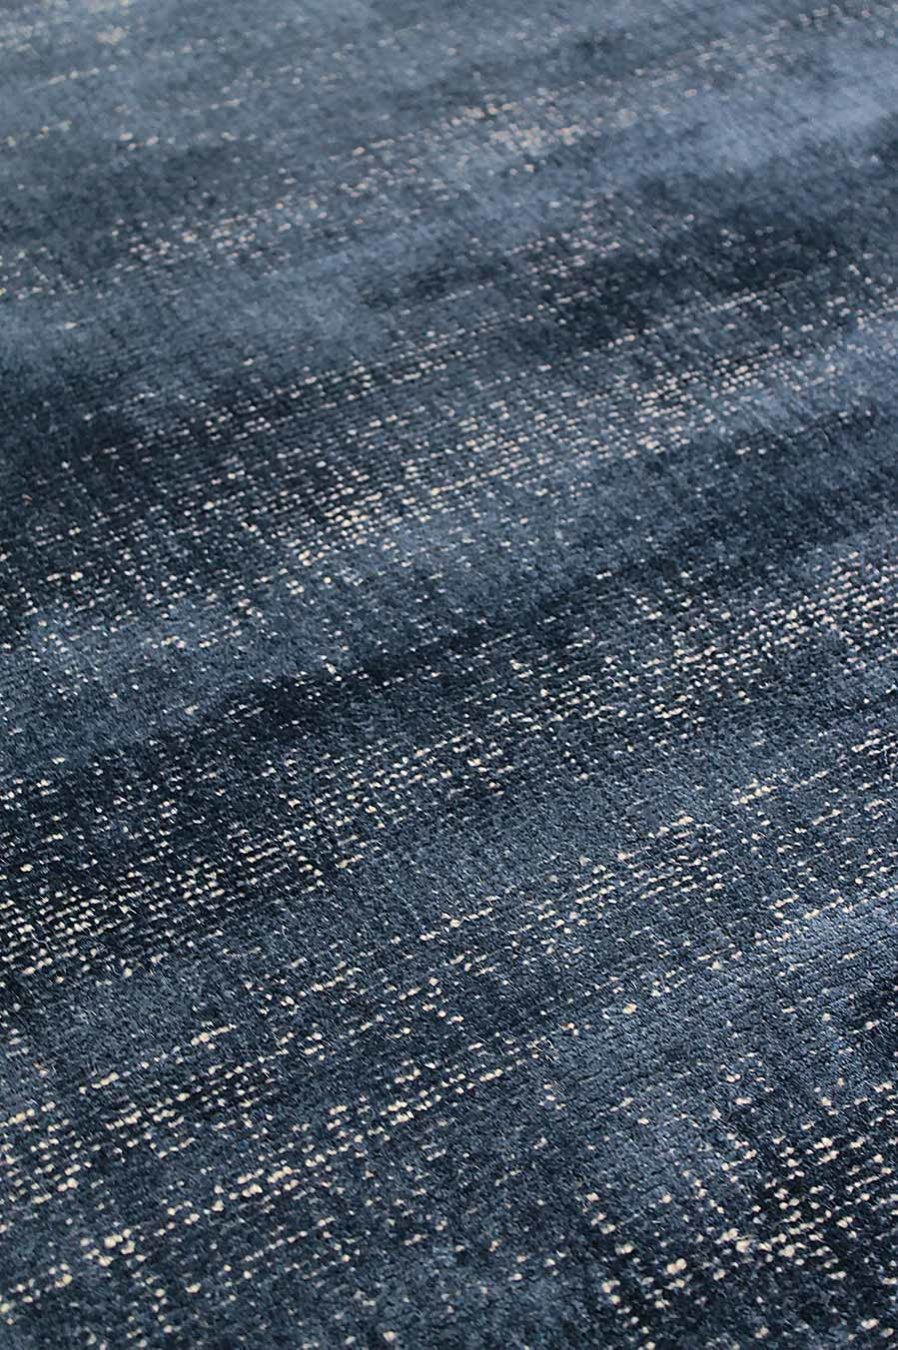 Close up view of textured Colorado rug in navy blue colour